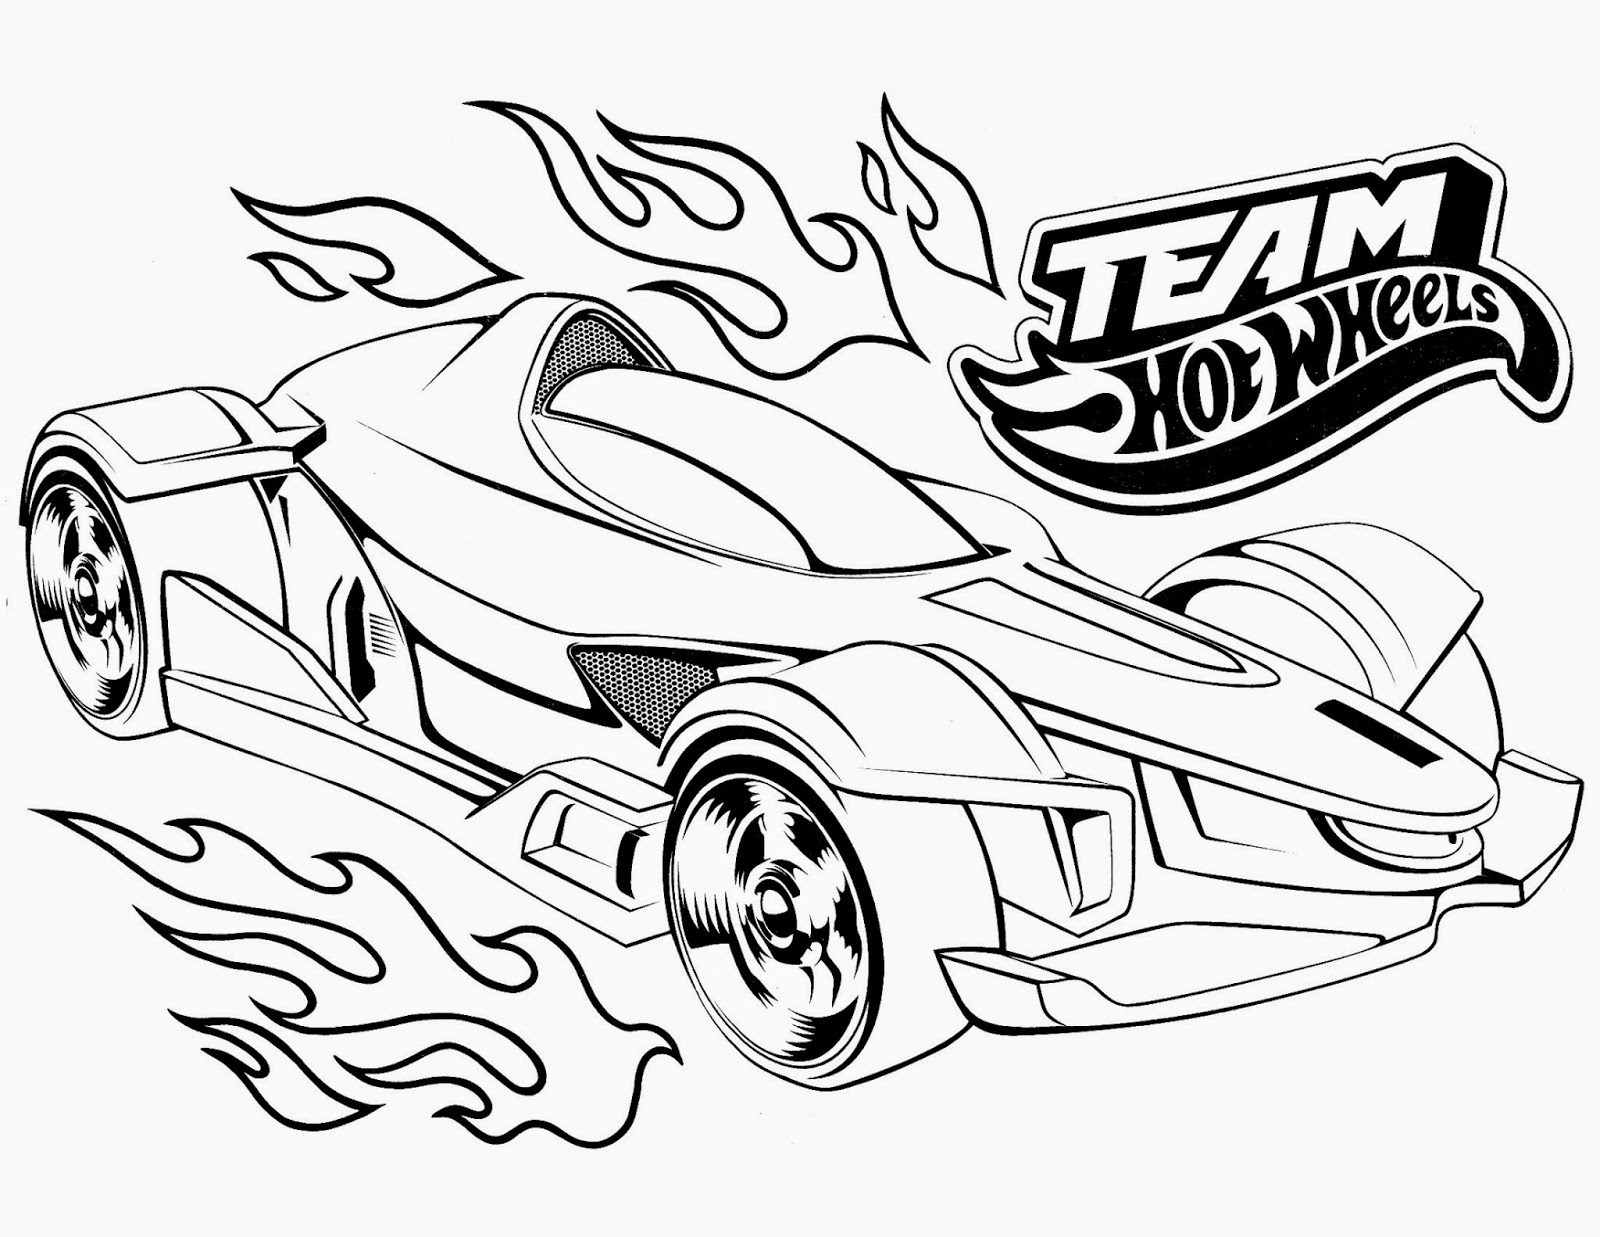 coloring pages matchbox cars matchbox cars coloring pages pages matchbox coloring cars